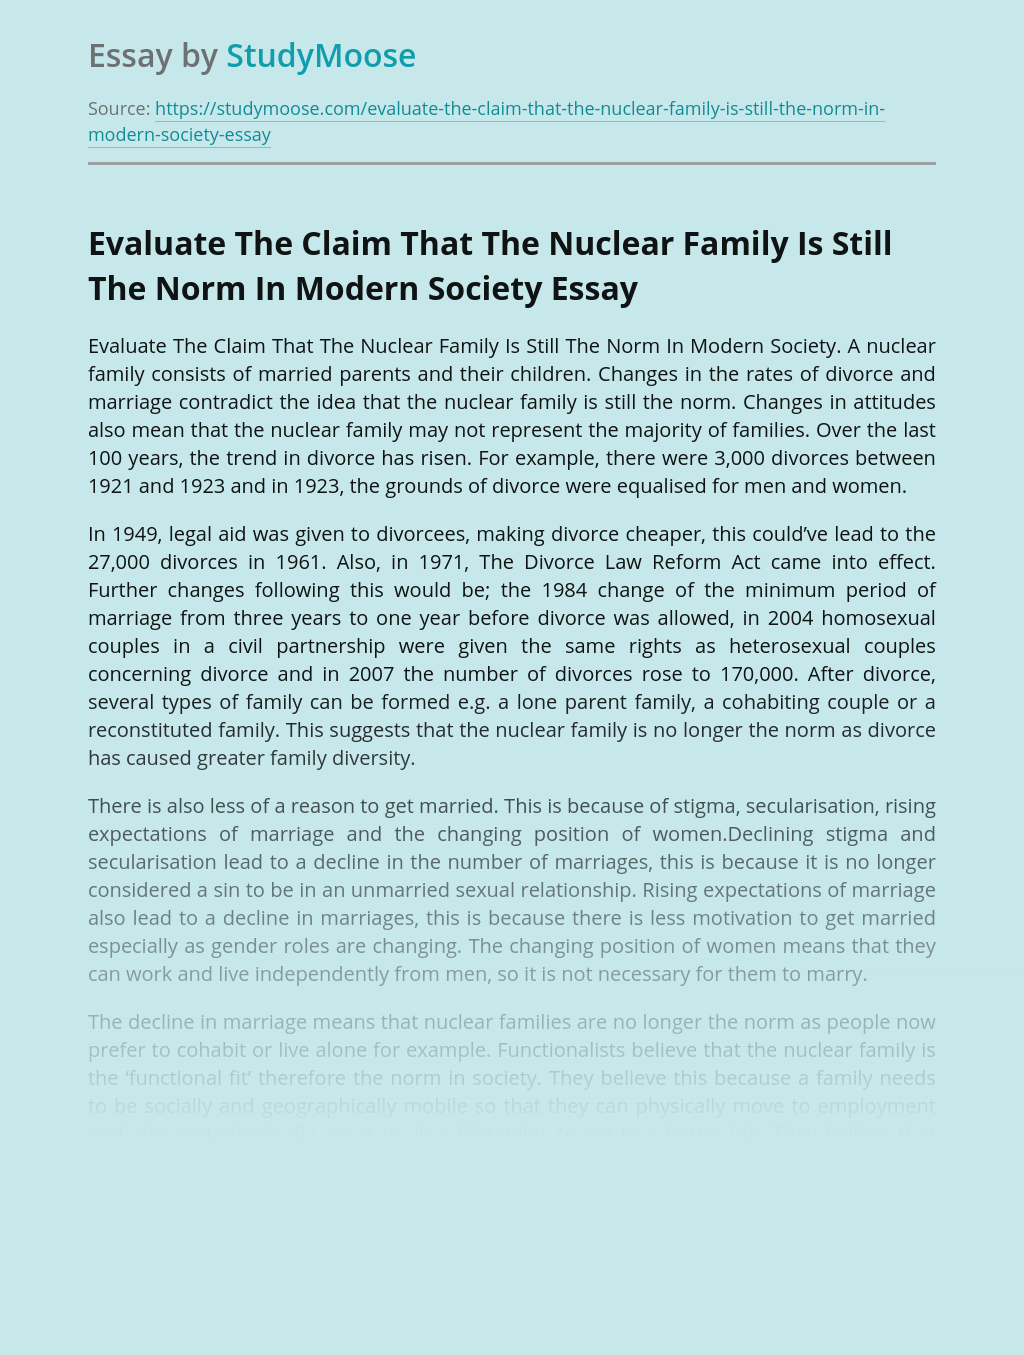 Evaluate The Claim That The Nuclear Family Is Still The Norm In Modern Society